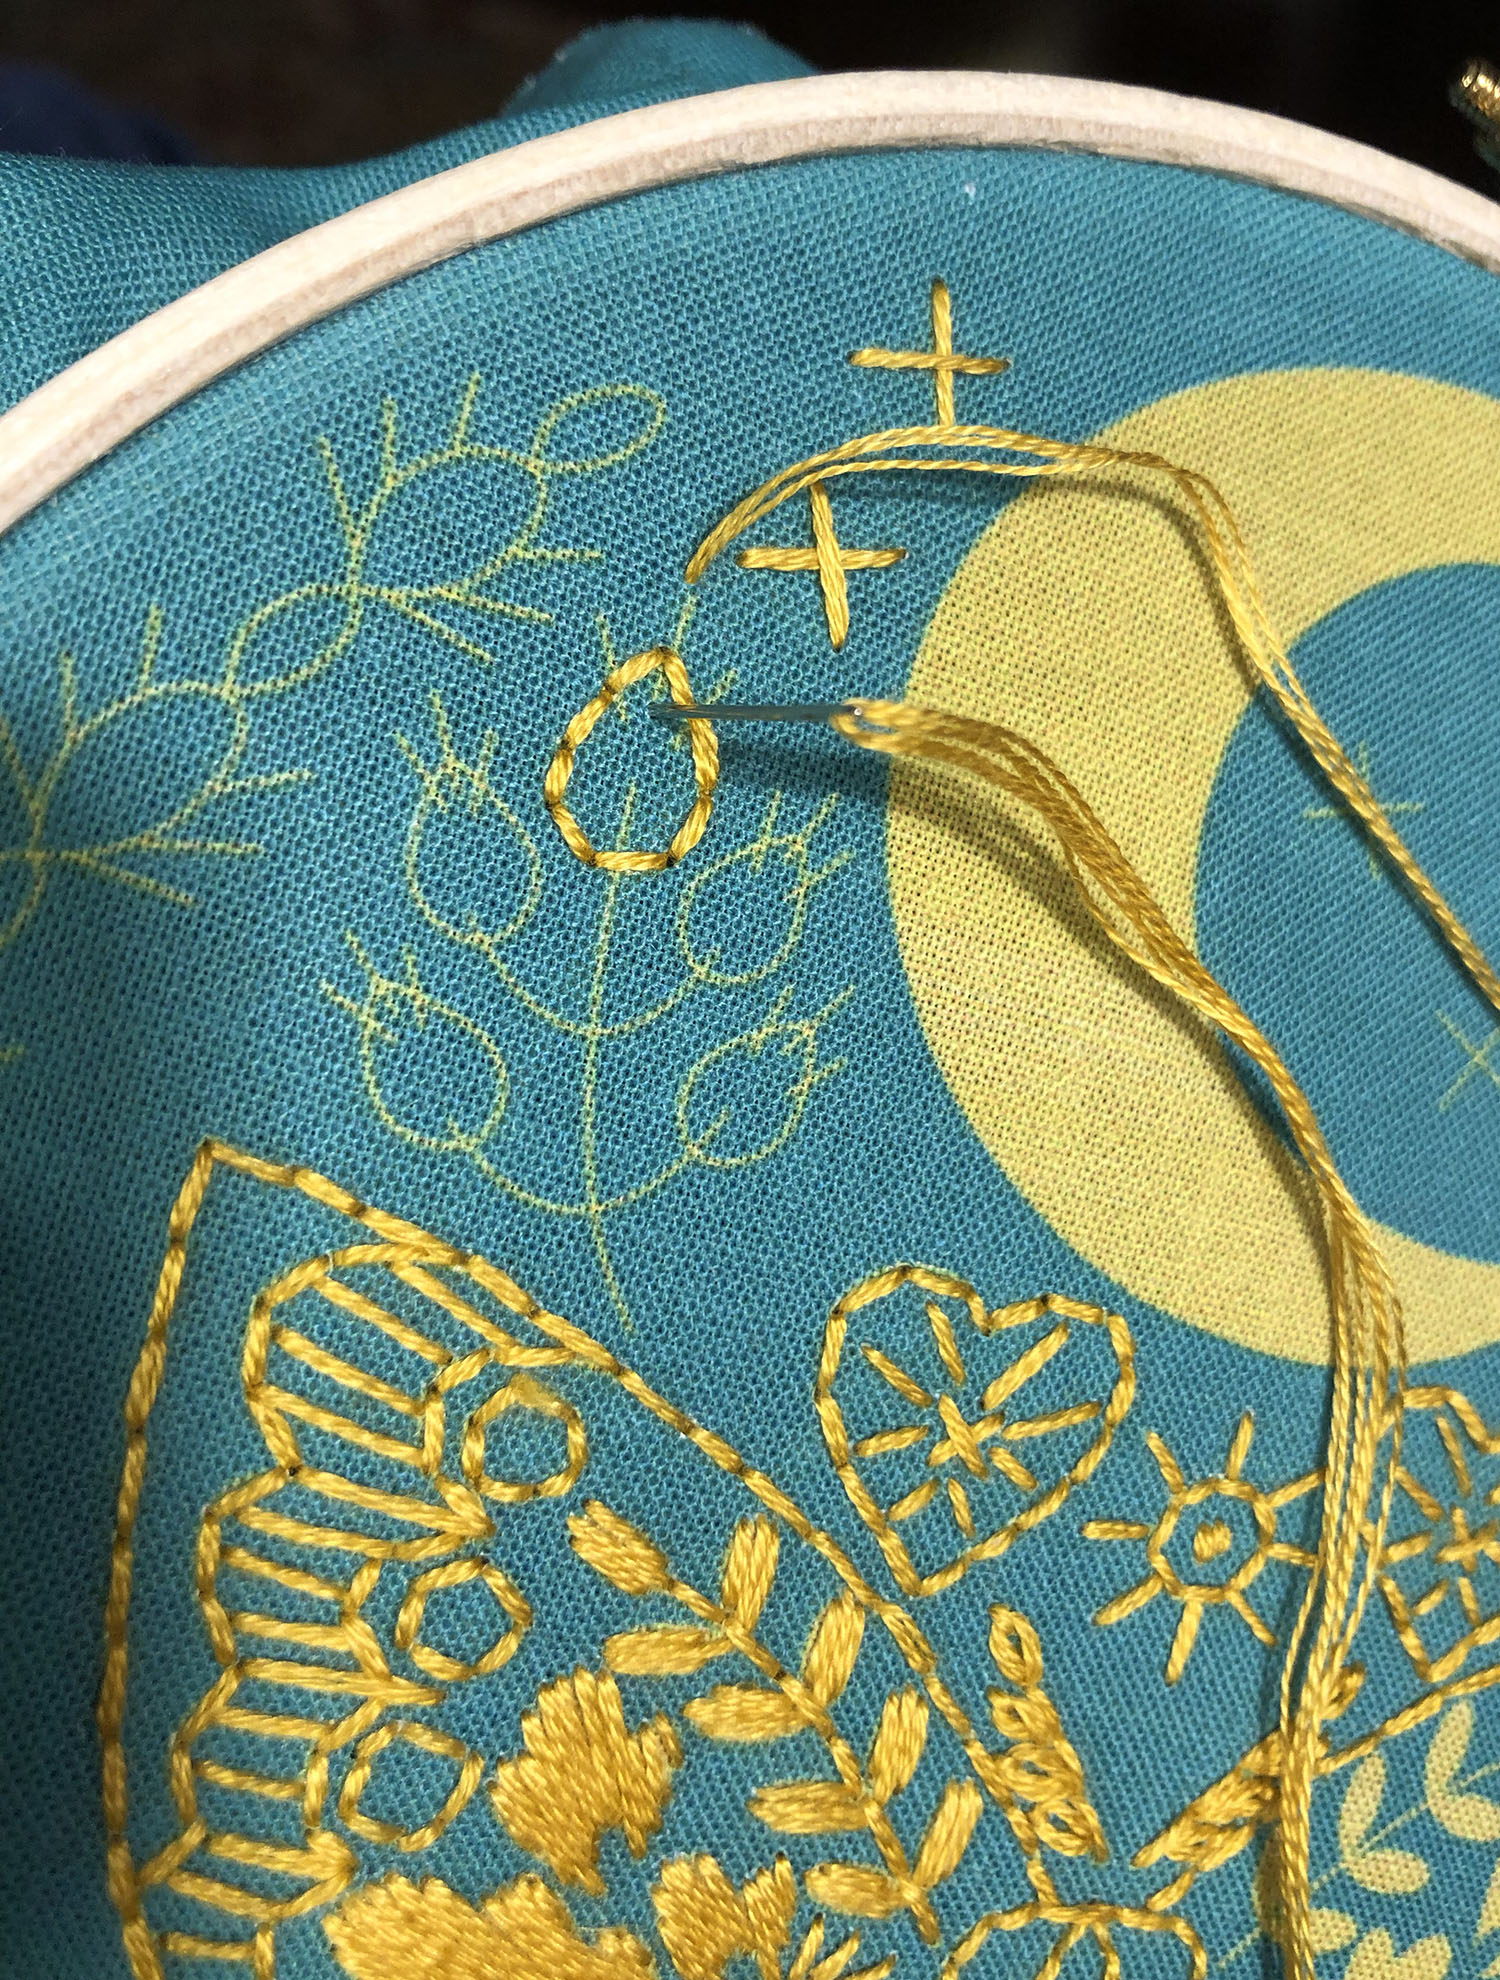 Seed Stitch over Back Stitch outline